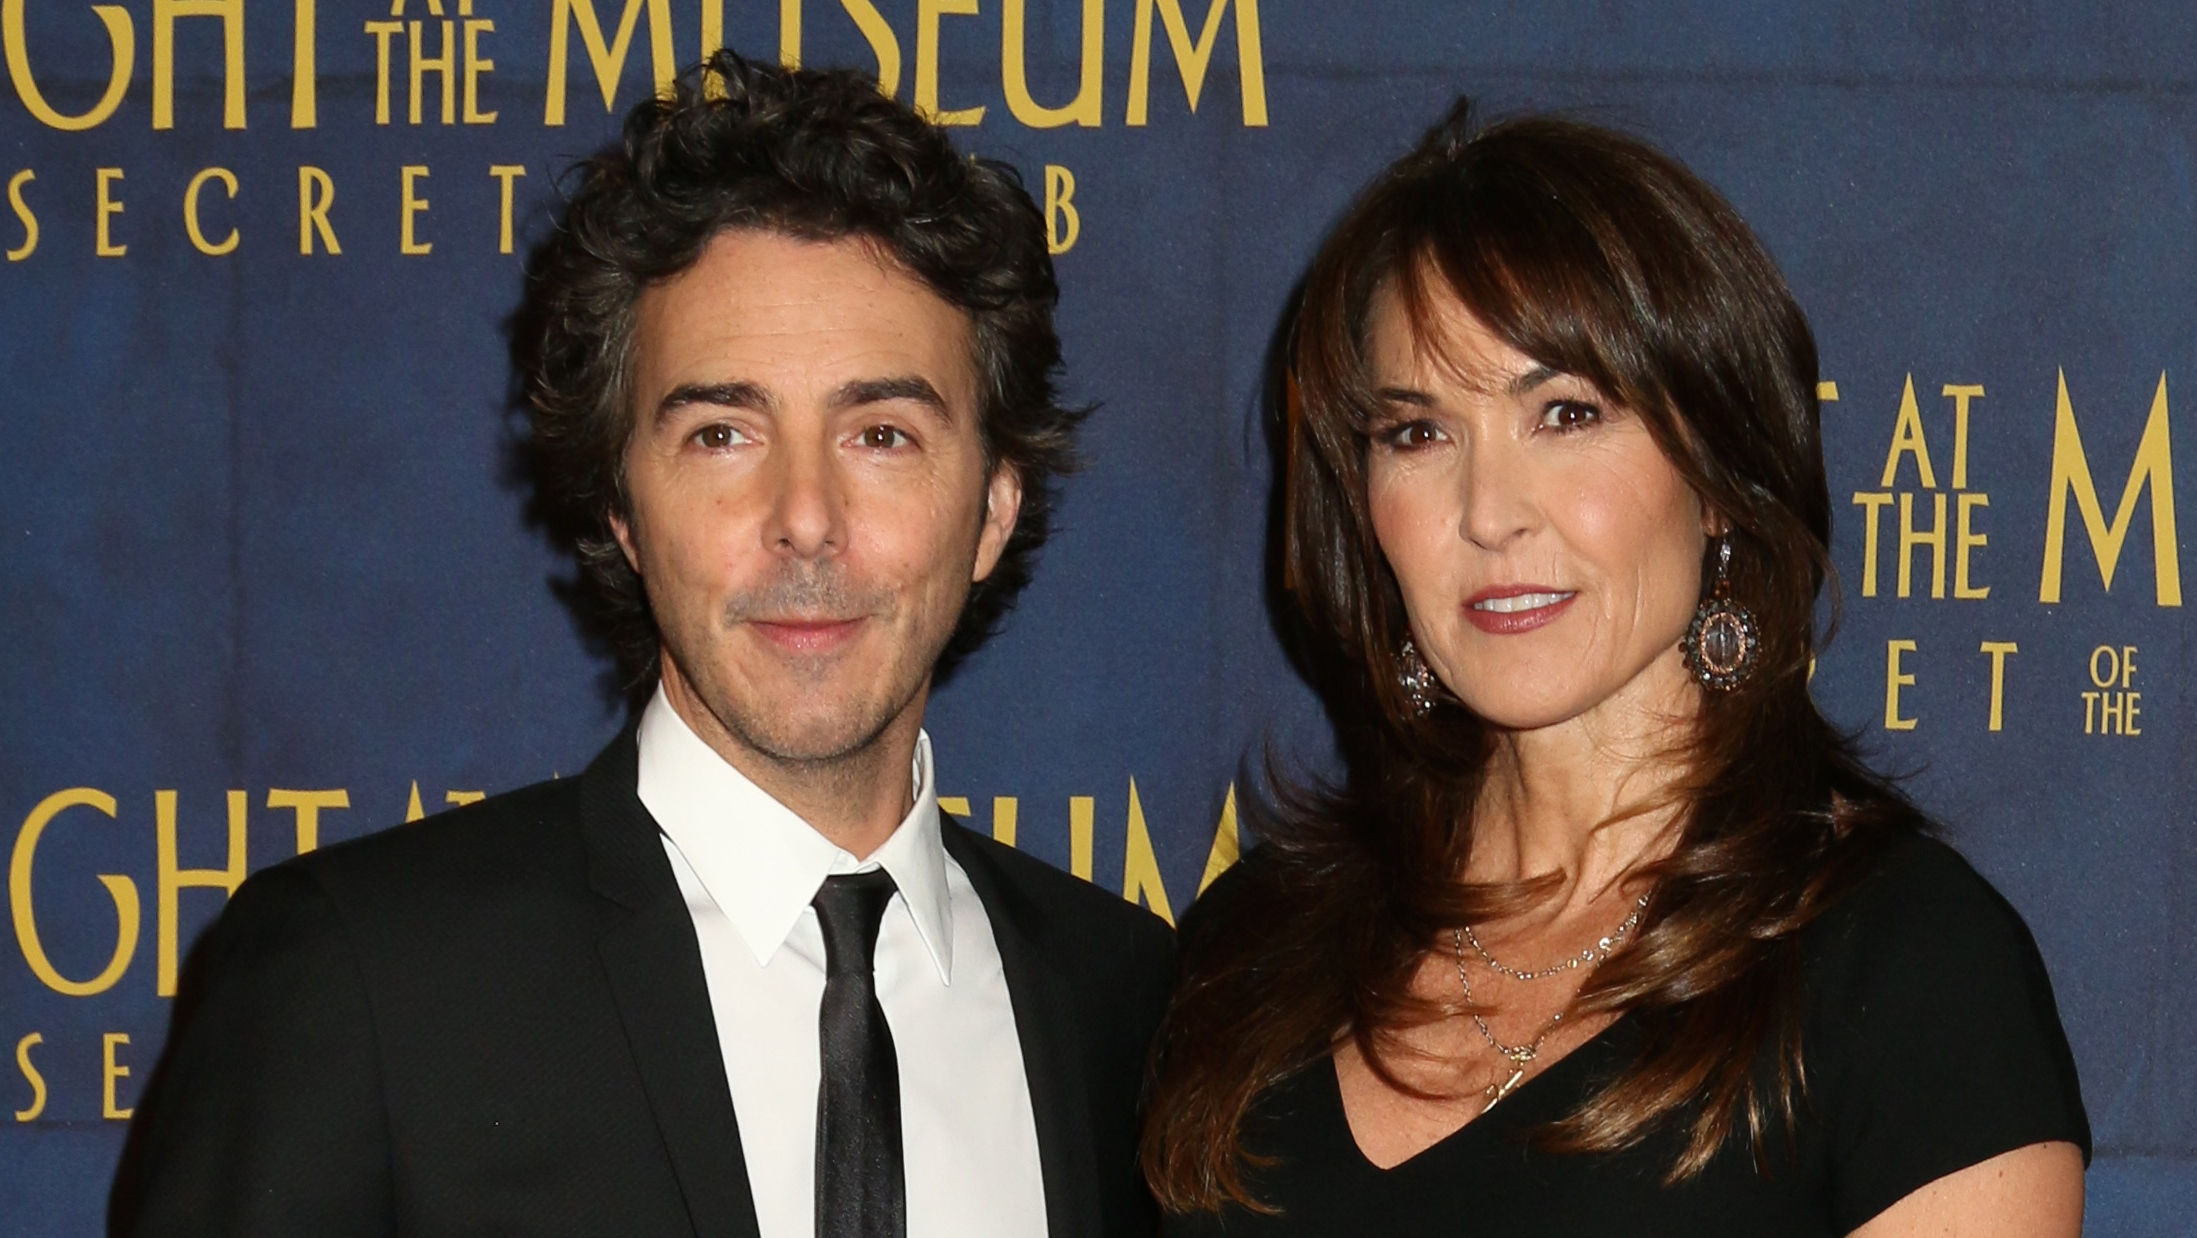 Shawn Levy, Susan Schneider at the 'Night at the Museum: Secret of the Tomb' premiere - H 2014